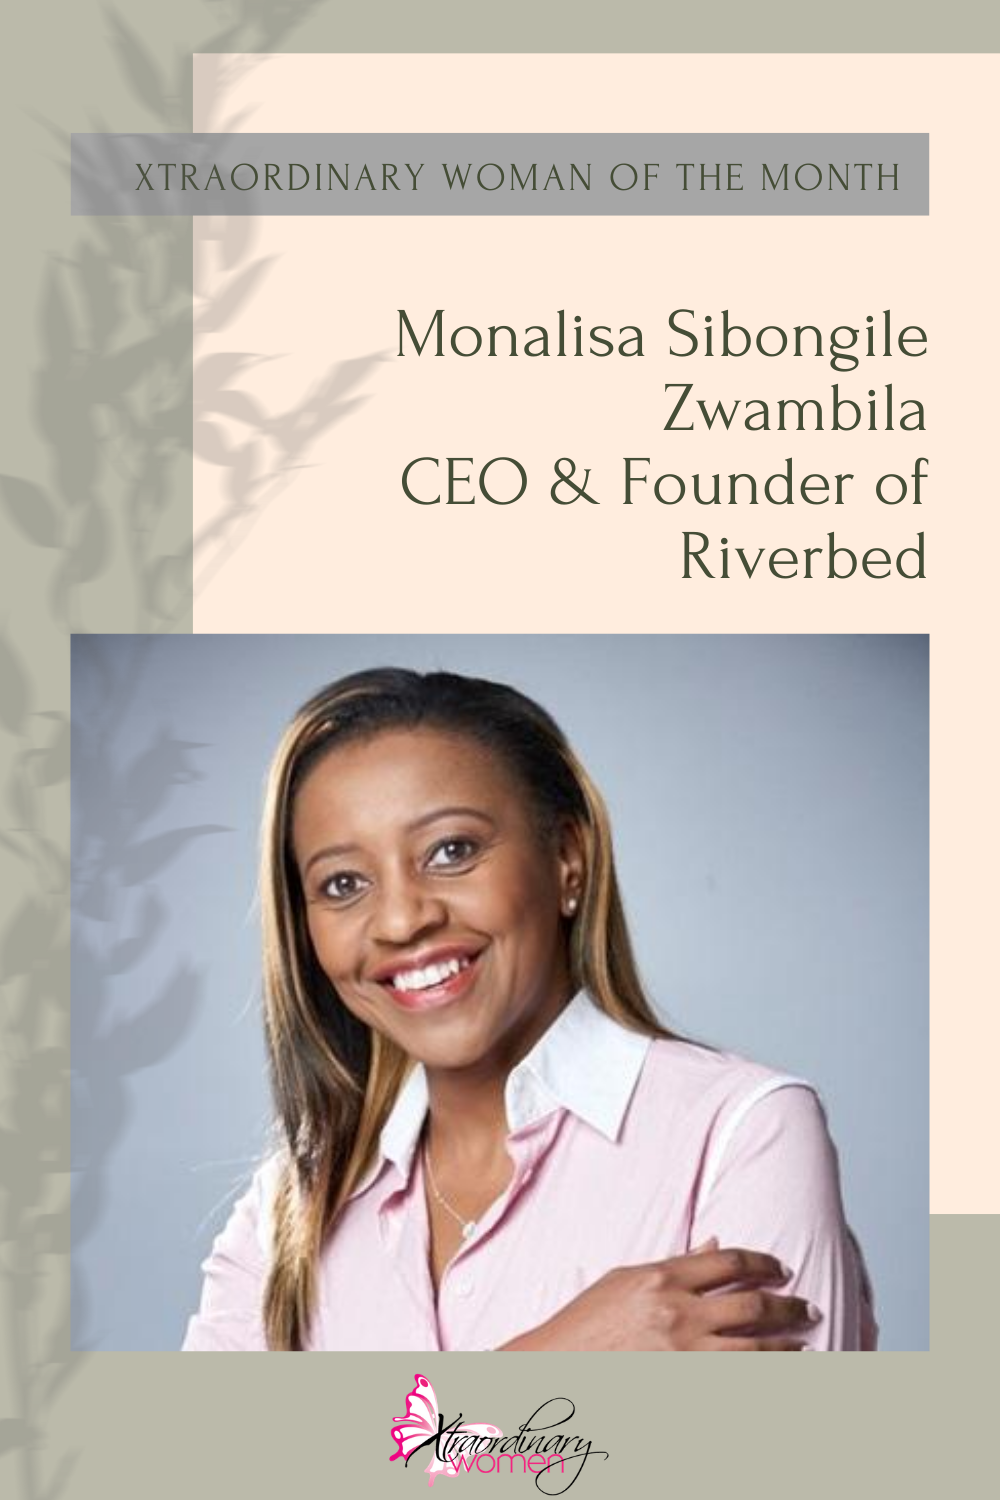 Xtraordinary Woman of the Month - Monalisa Sibongile Zwambila